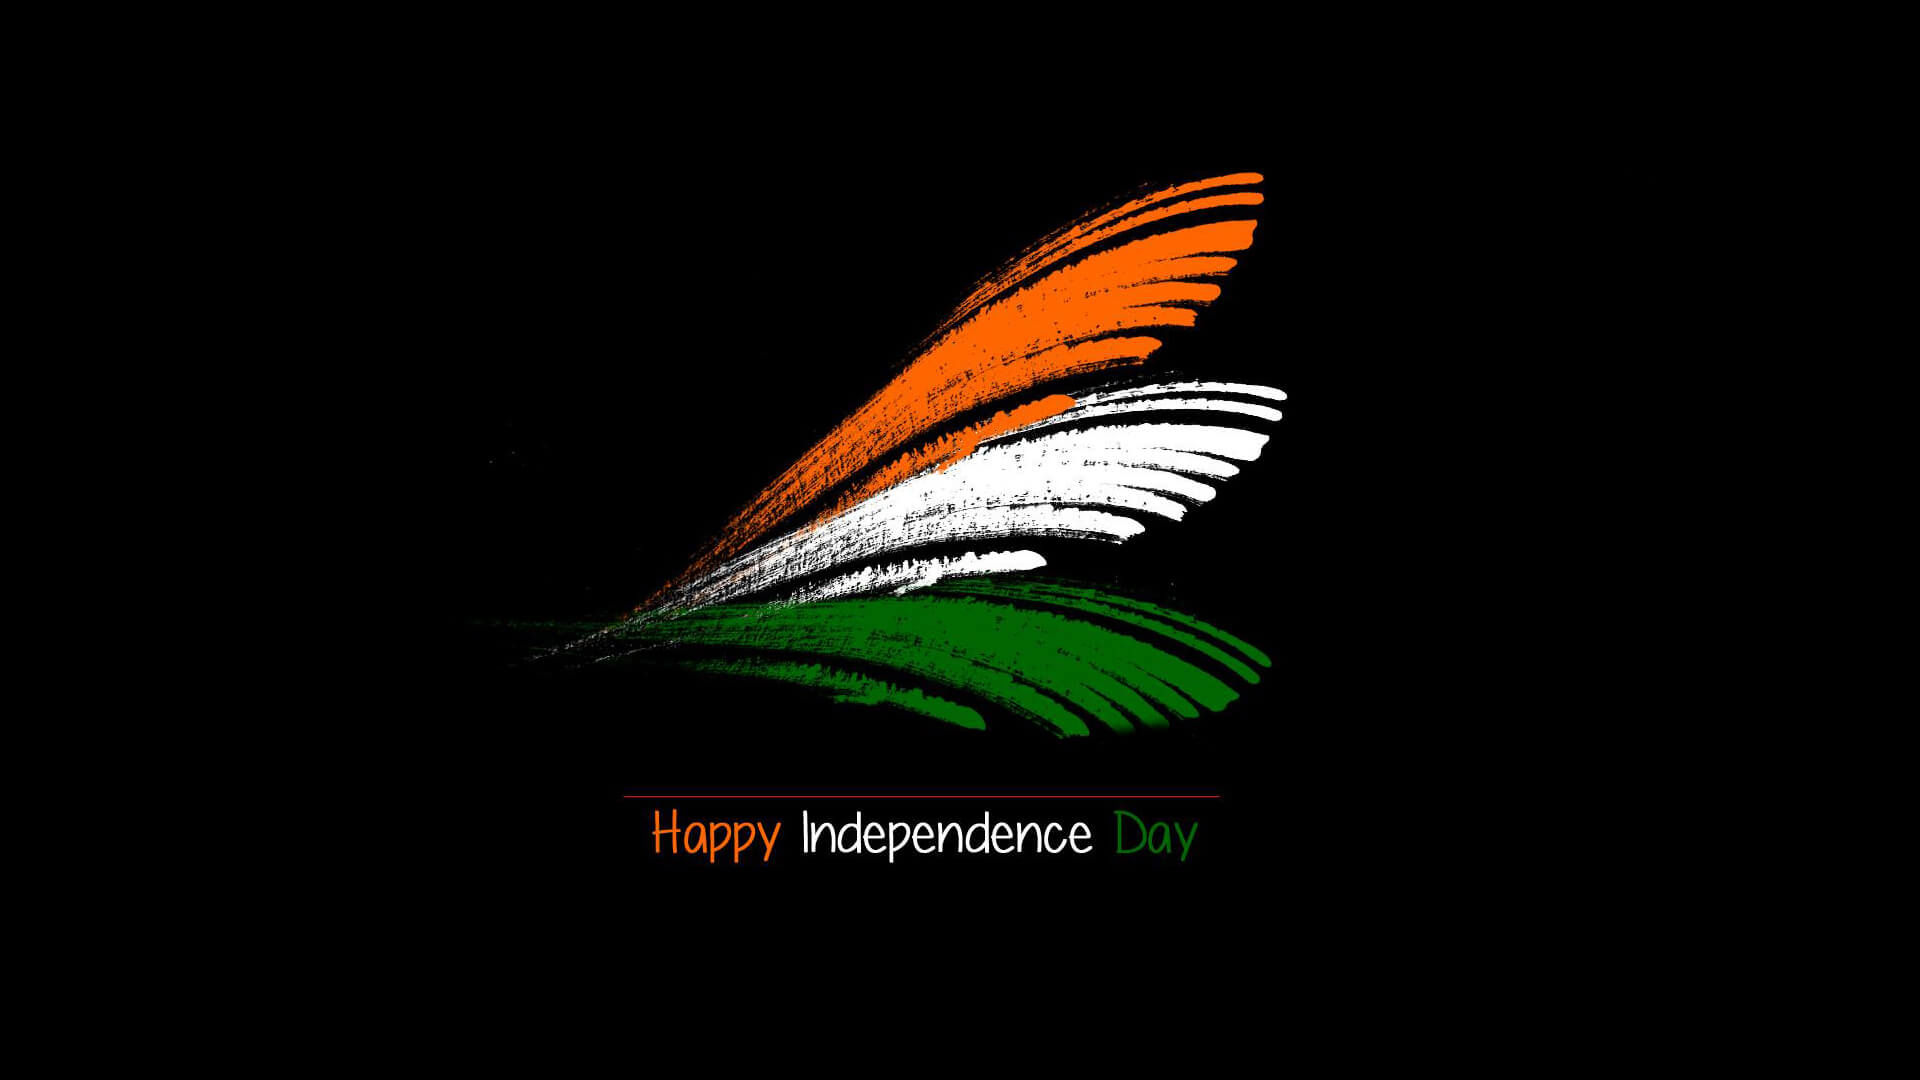 Patriotic Wallpapers and Greetings Independence Day